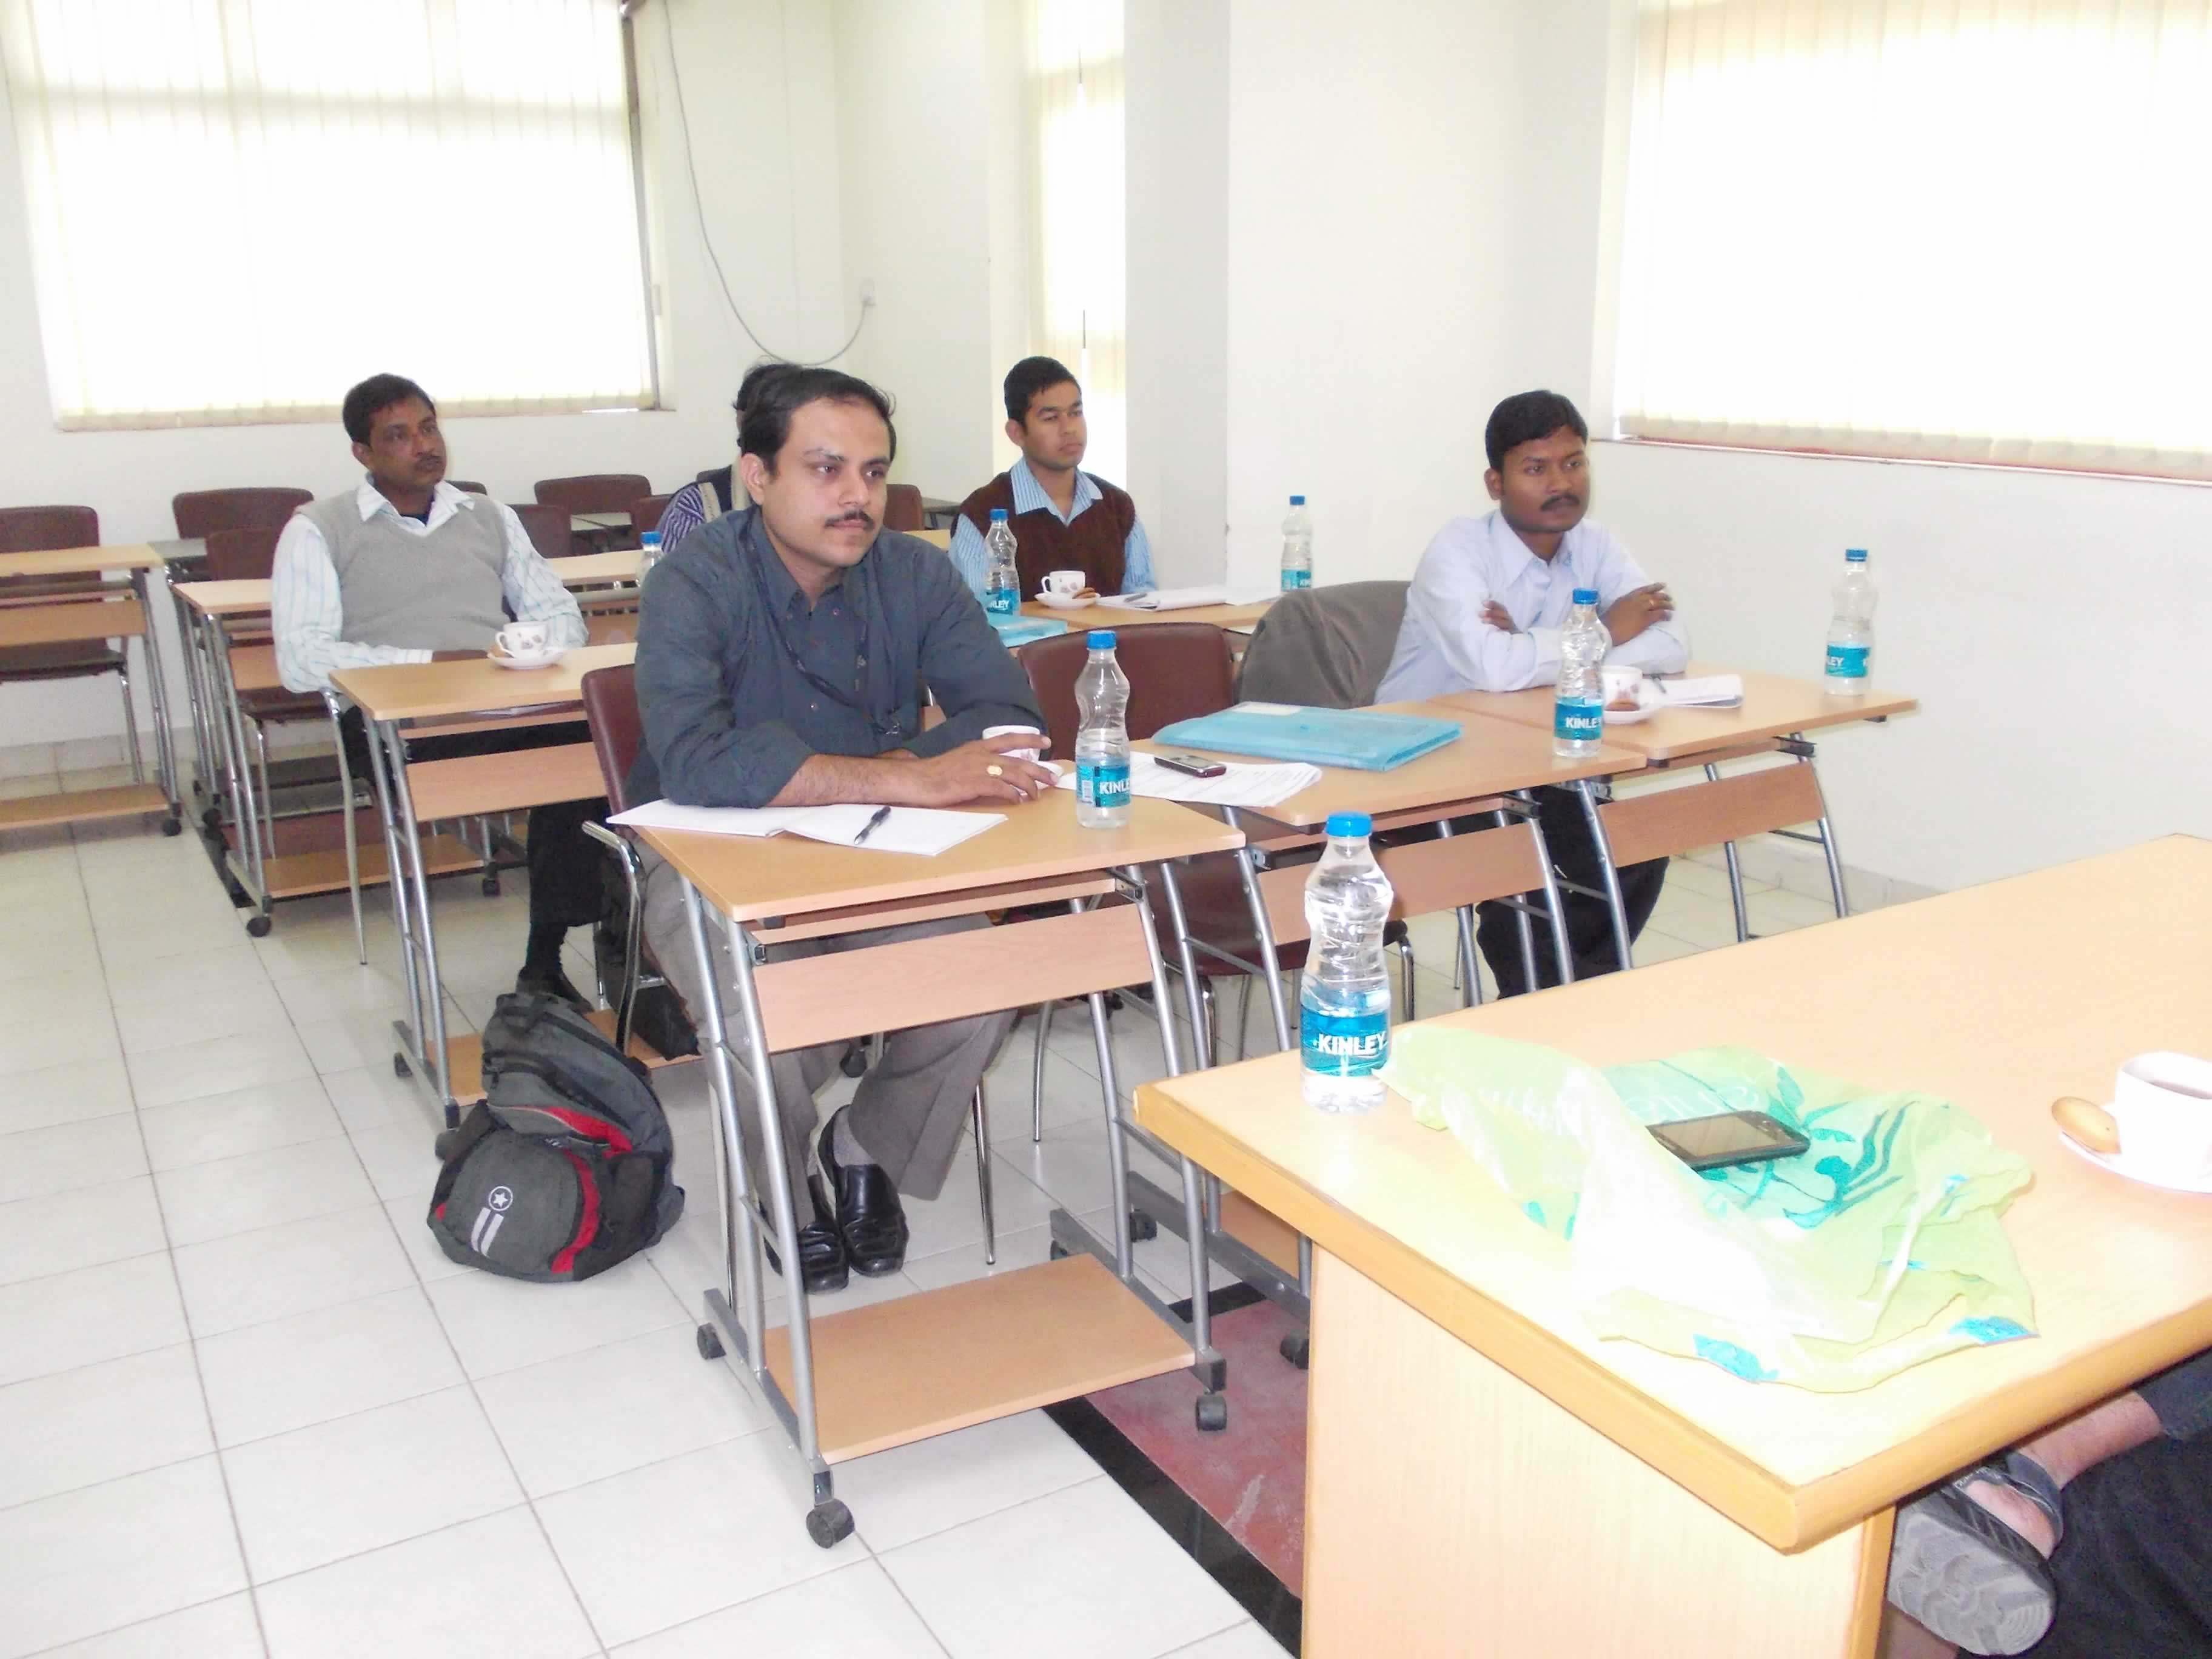 Class going on for 6 days Short Training Program on Solar PV for Energy Managers